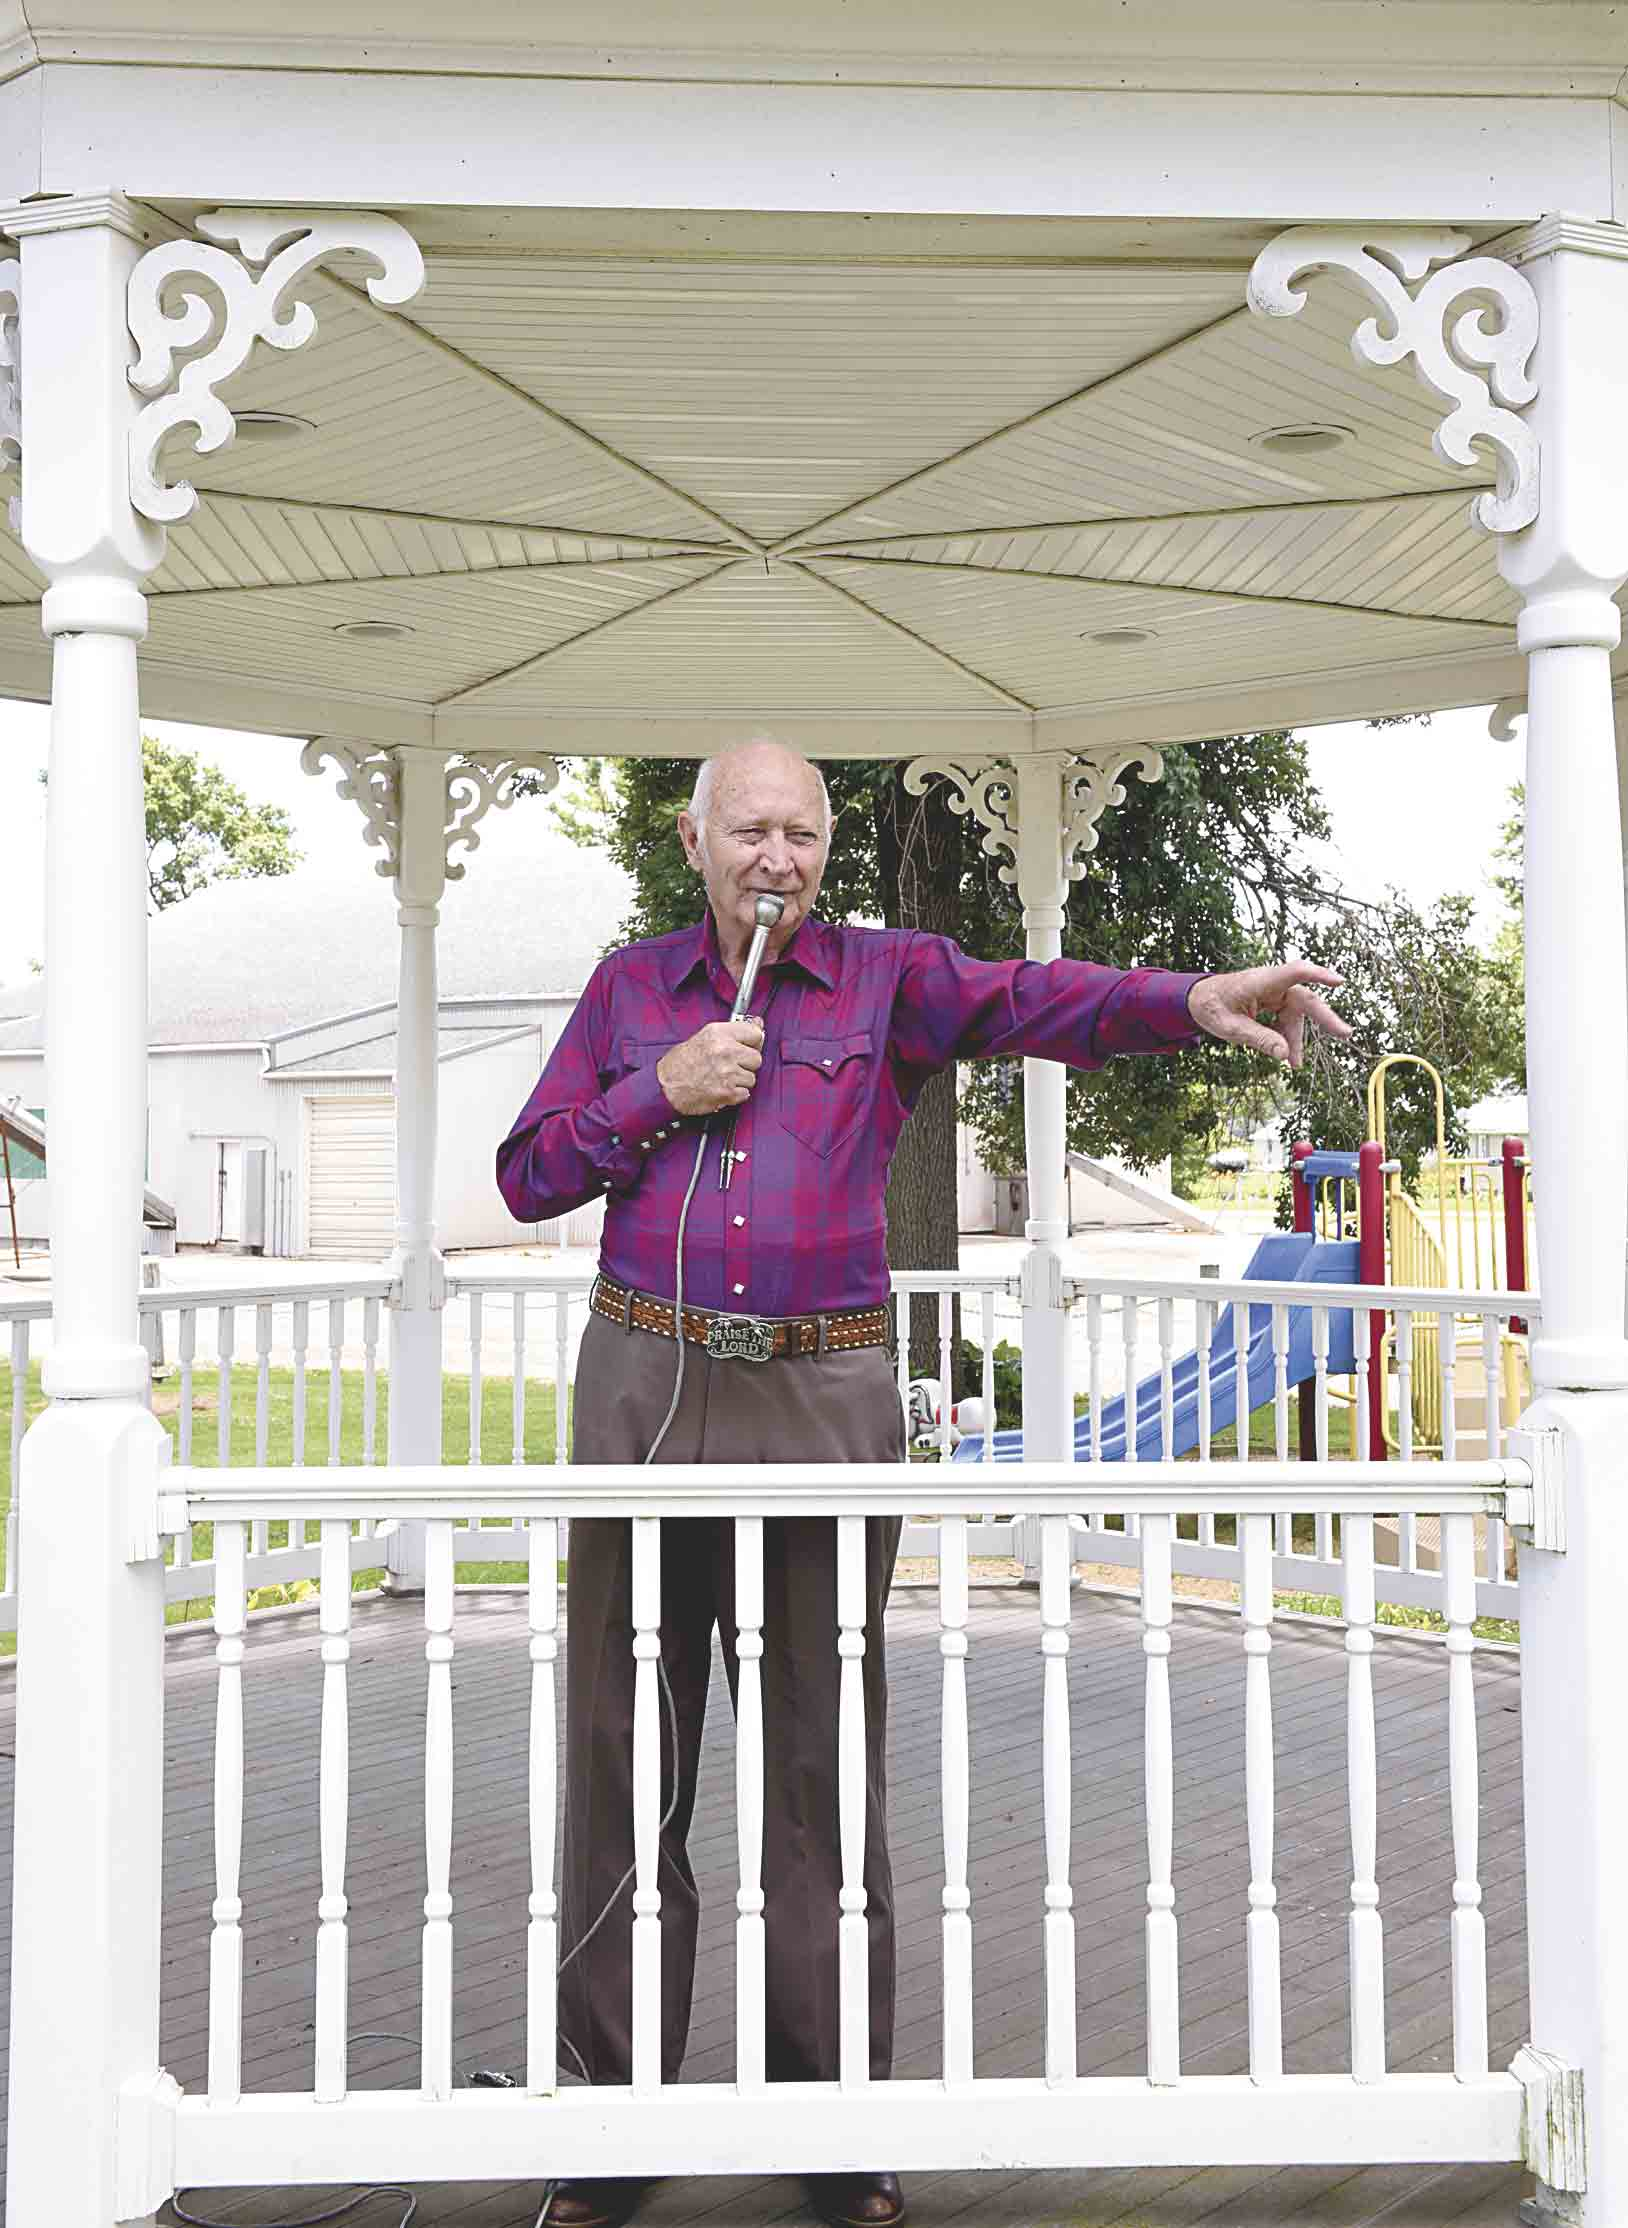 Les LaLone, Hall of Fame square dance caller, will be calling square dancing at 12:30 p.m. Wednesday, July 26, in the Dance Pavilion at the Fayette County Fair this year. The Hawkeye resident has primarily called in a five-state region in the Midwest, but he has also called for crowds of...